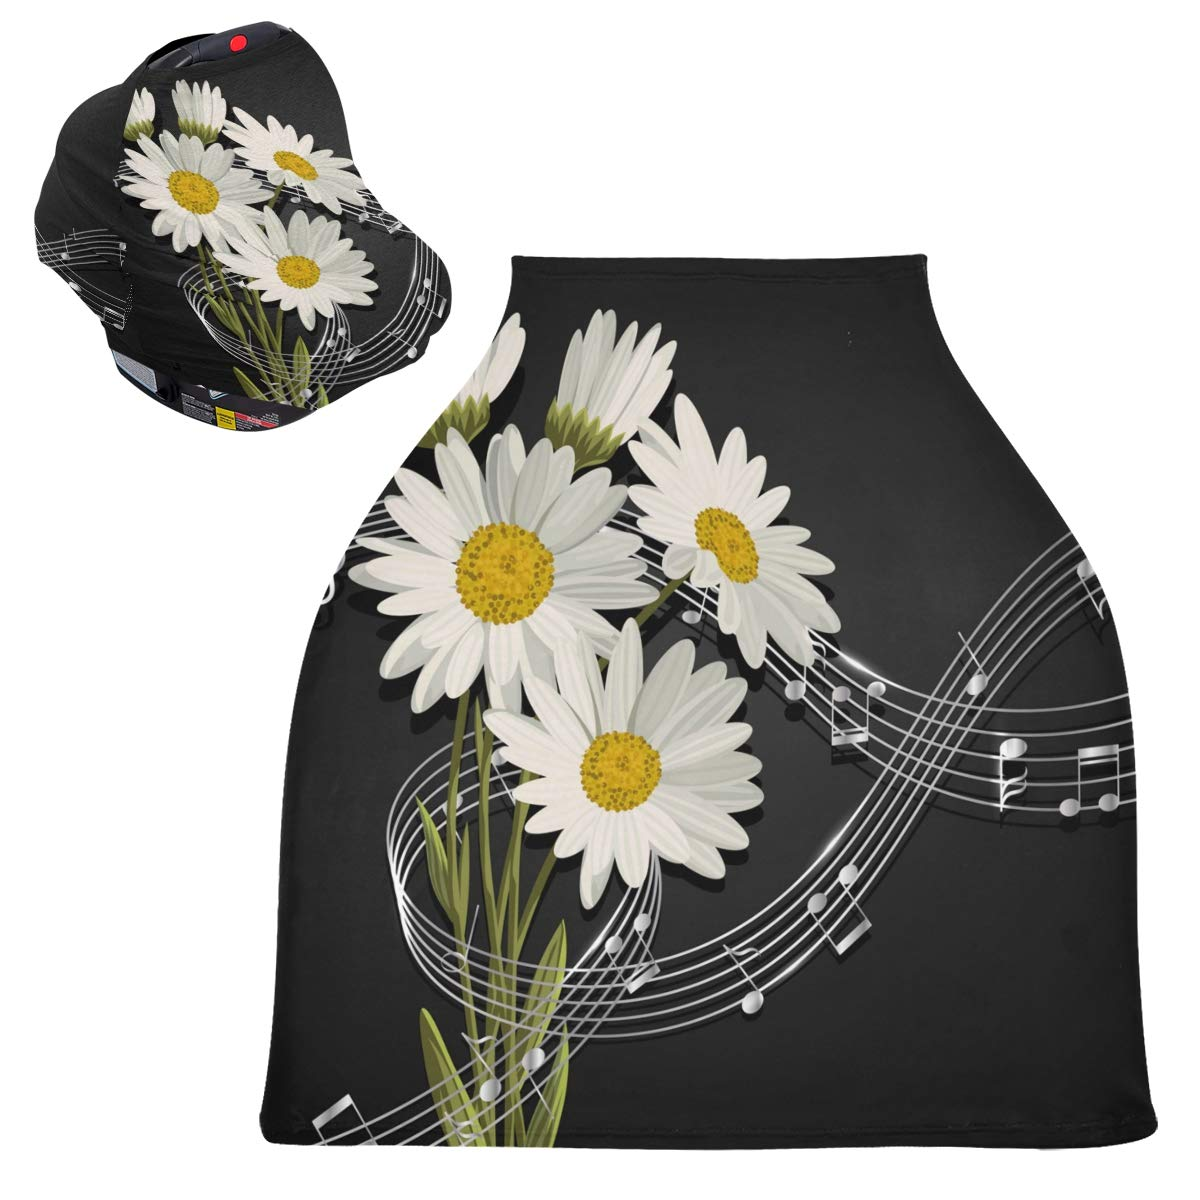 Stretchy Baby Car Seat Canopy - Music Notes and Daisy Flowers On Black Infant Stroller Cover Multi Use Carseat Canopy Cover Nursing Cover for High Chair